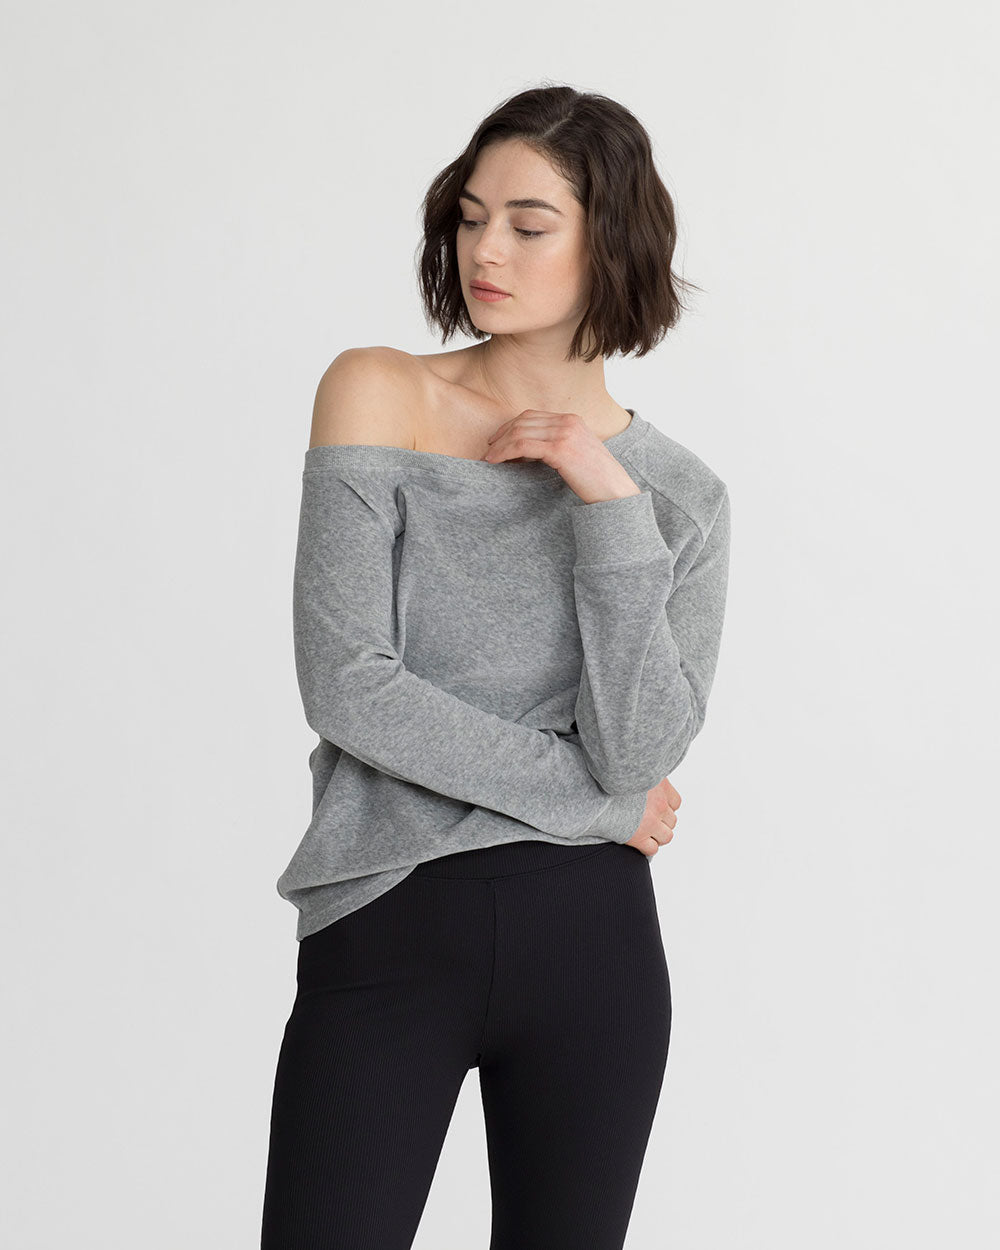 LUCIA TOP HT. GREY